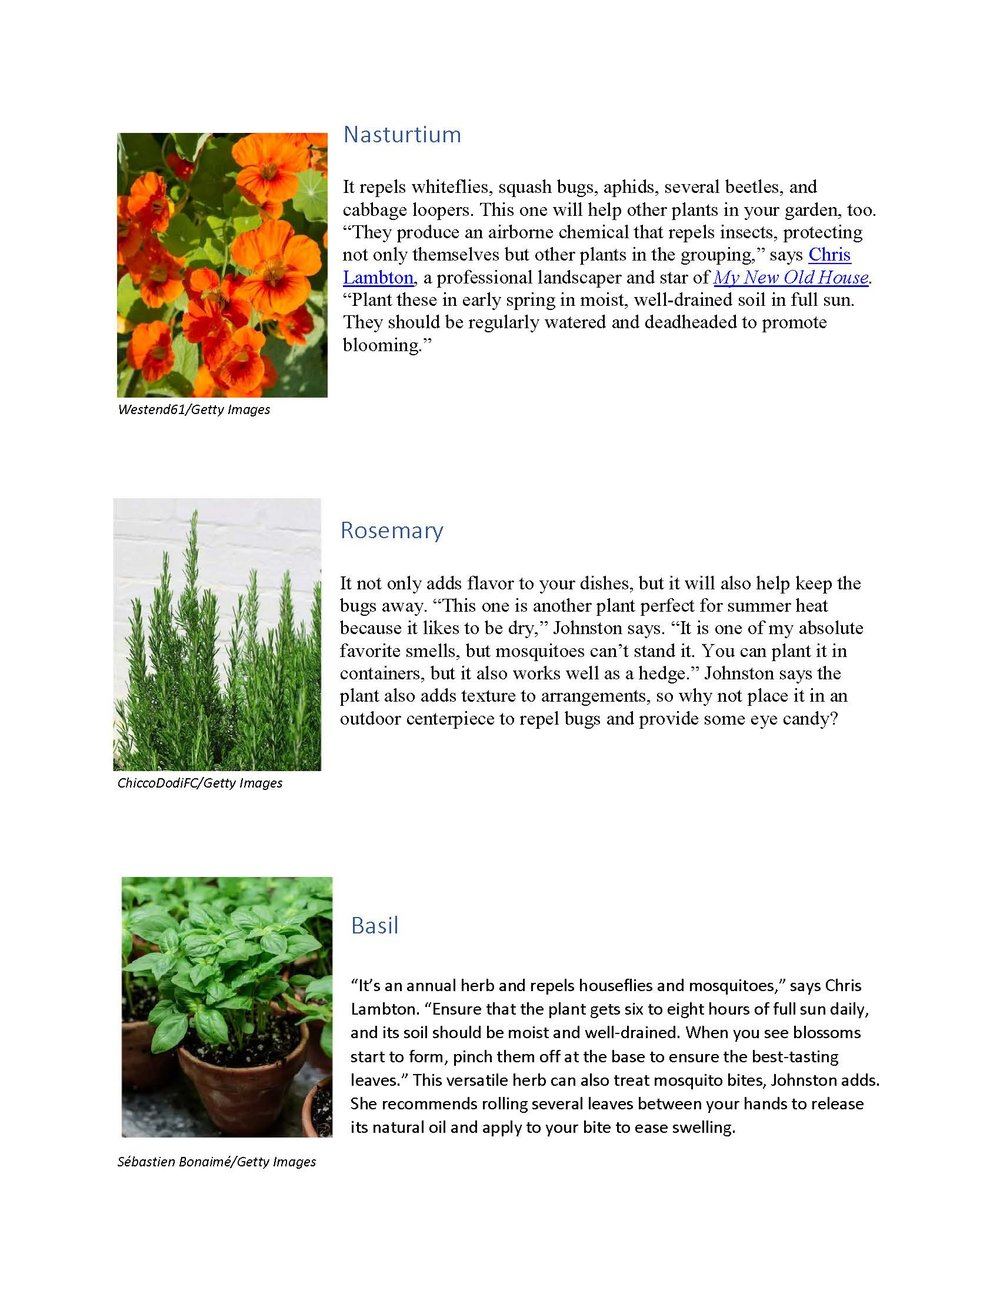 8 Plants That Repel Bugs_Page_2.jpg